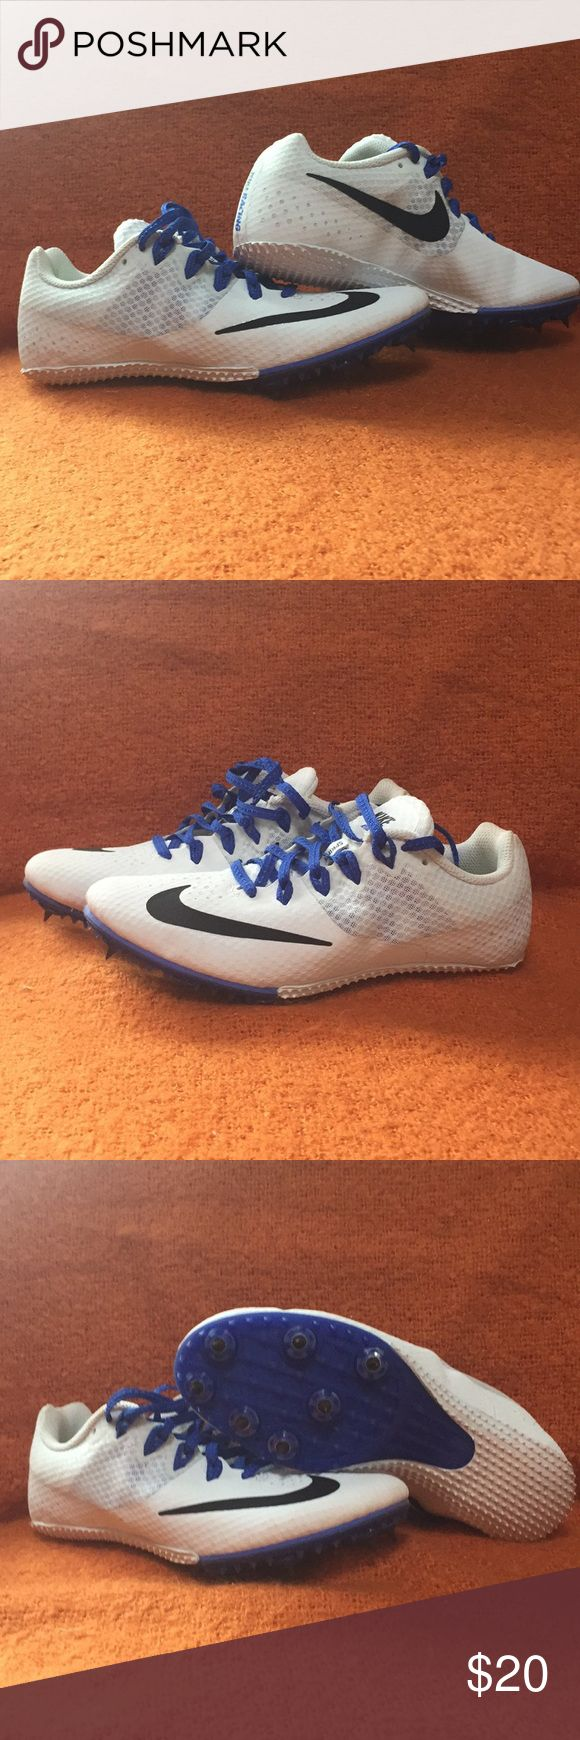 Sprinting spikes size 7 womens Used once at practice Nike Shoes Athletic Shoes